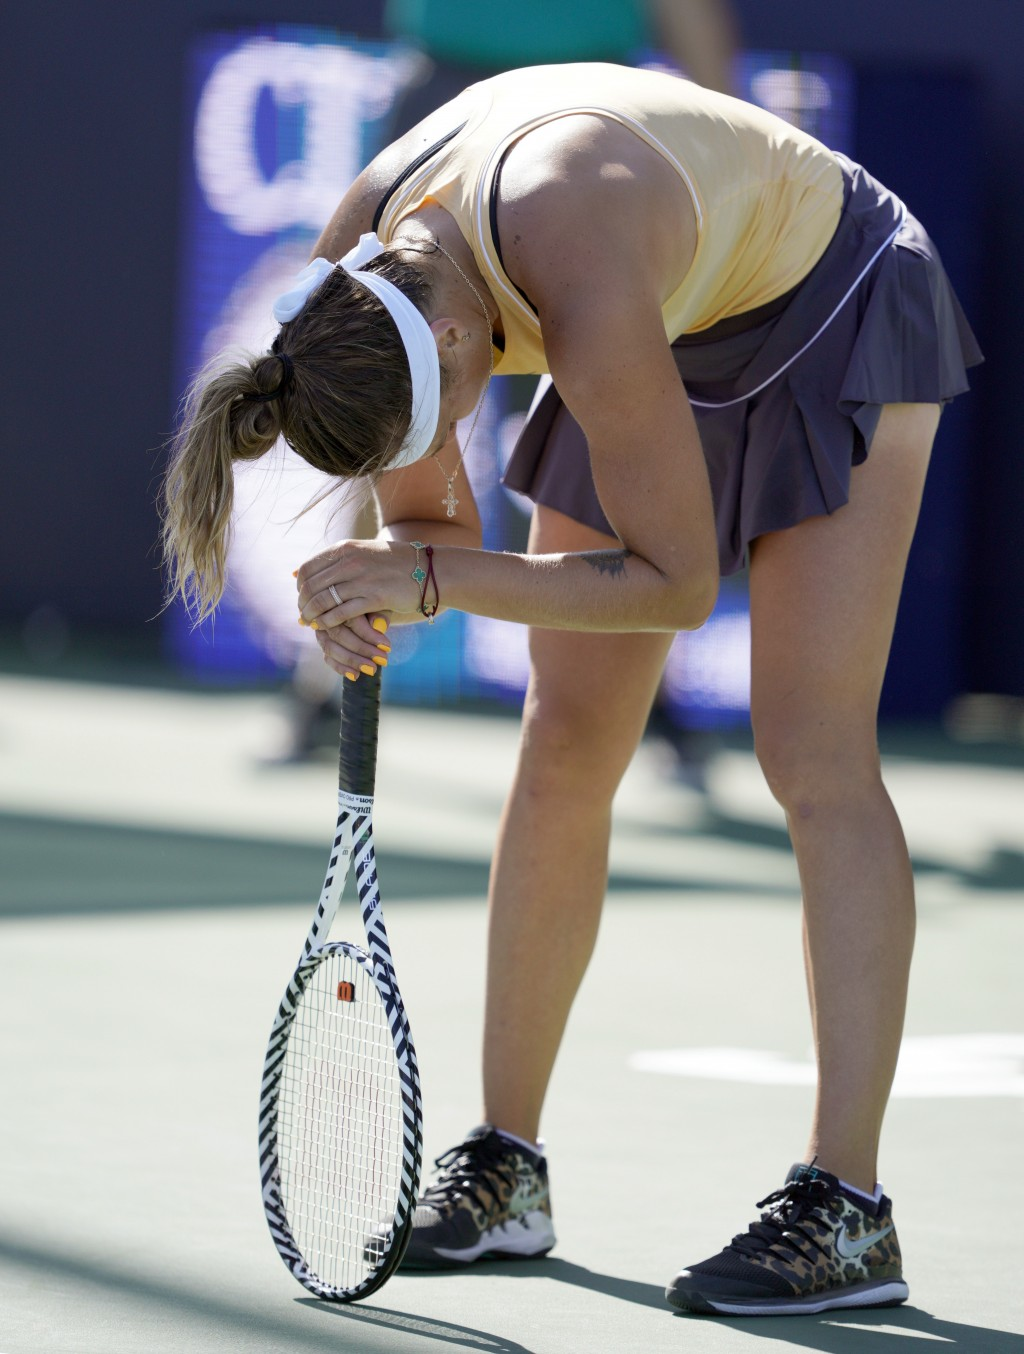 Aryna Sabalenka, of Belarus, reacts after losing the first set against Zheng Saisai, of China, during the finals of the Mubadala Silicon Valley Classi